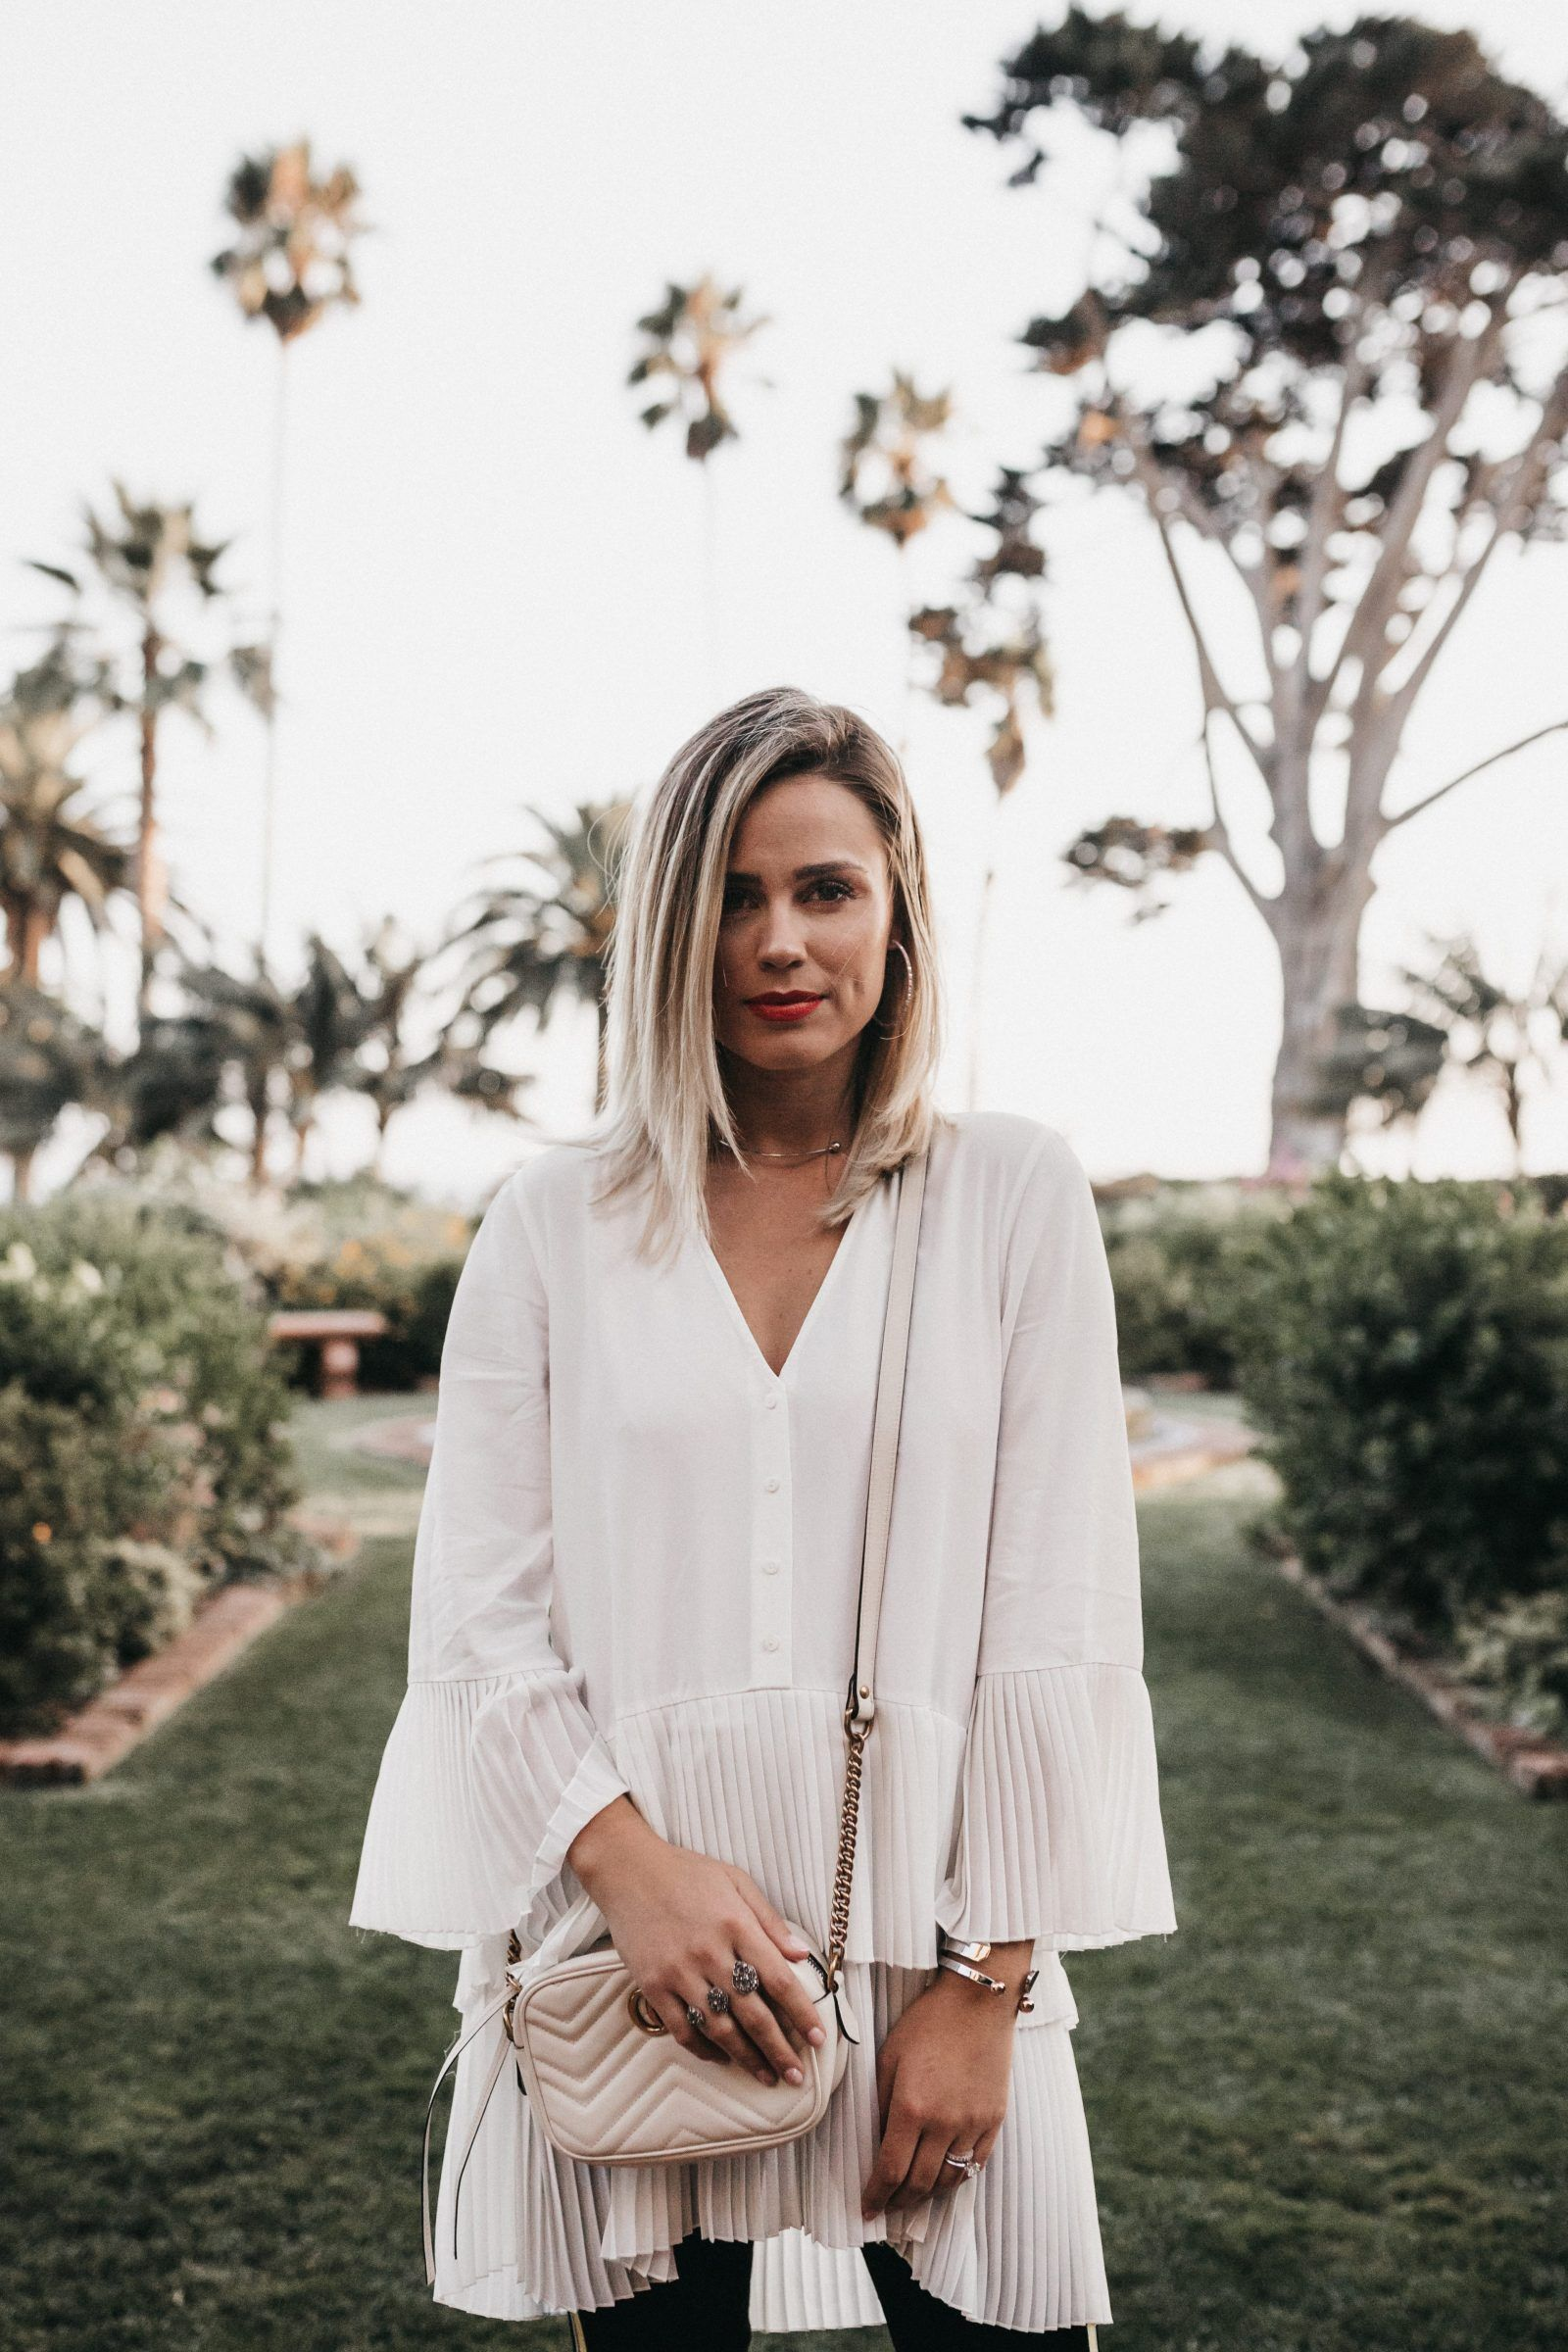 e20fa9b64d5 Houston fashion blogger Uptown with Elly Brown wears a white pleated Zara  blouse